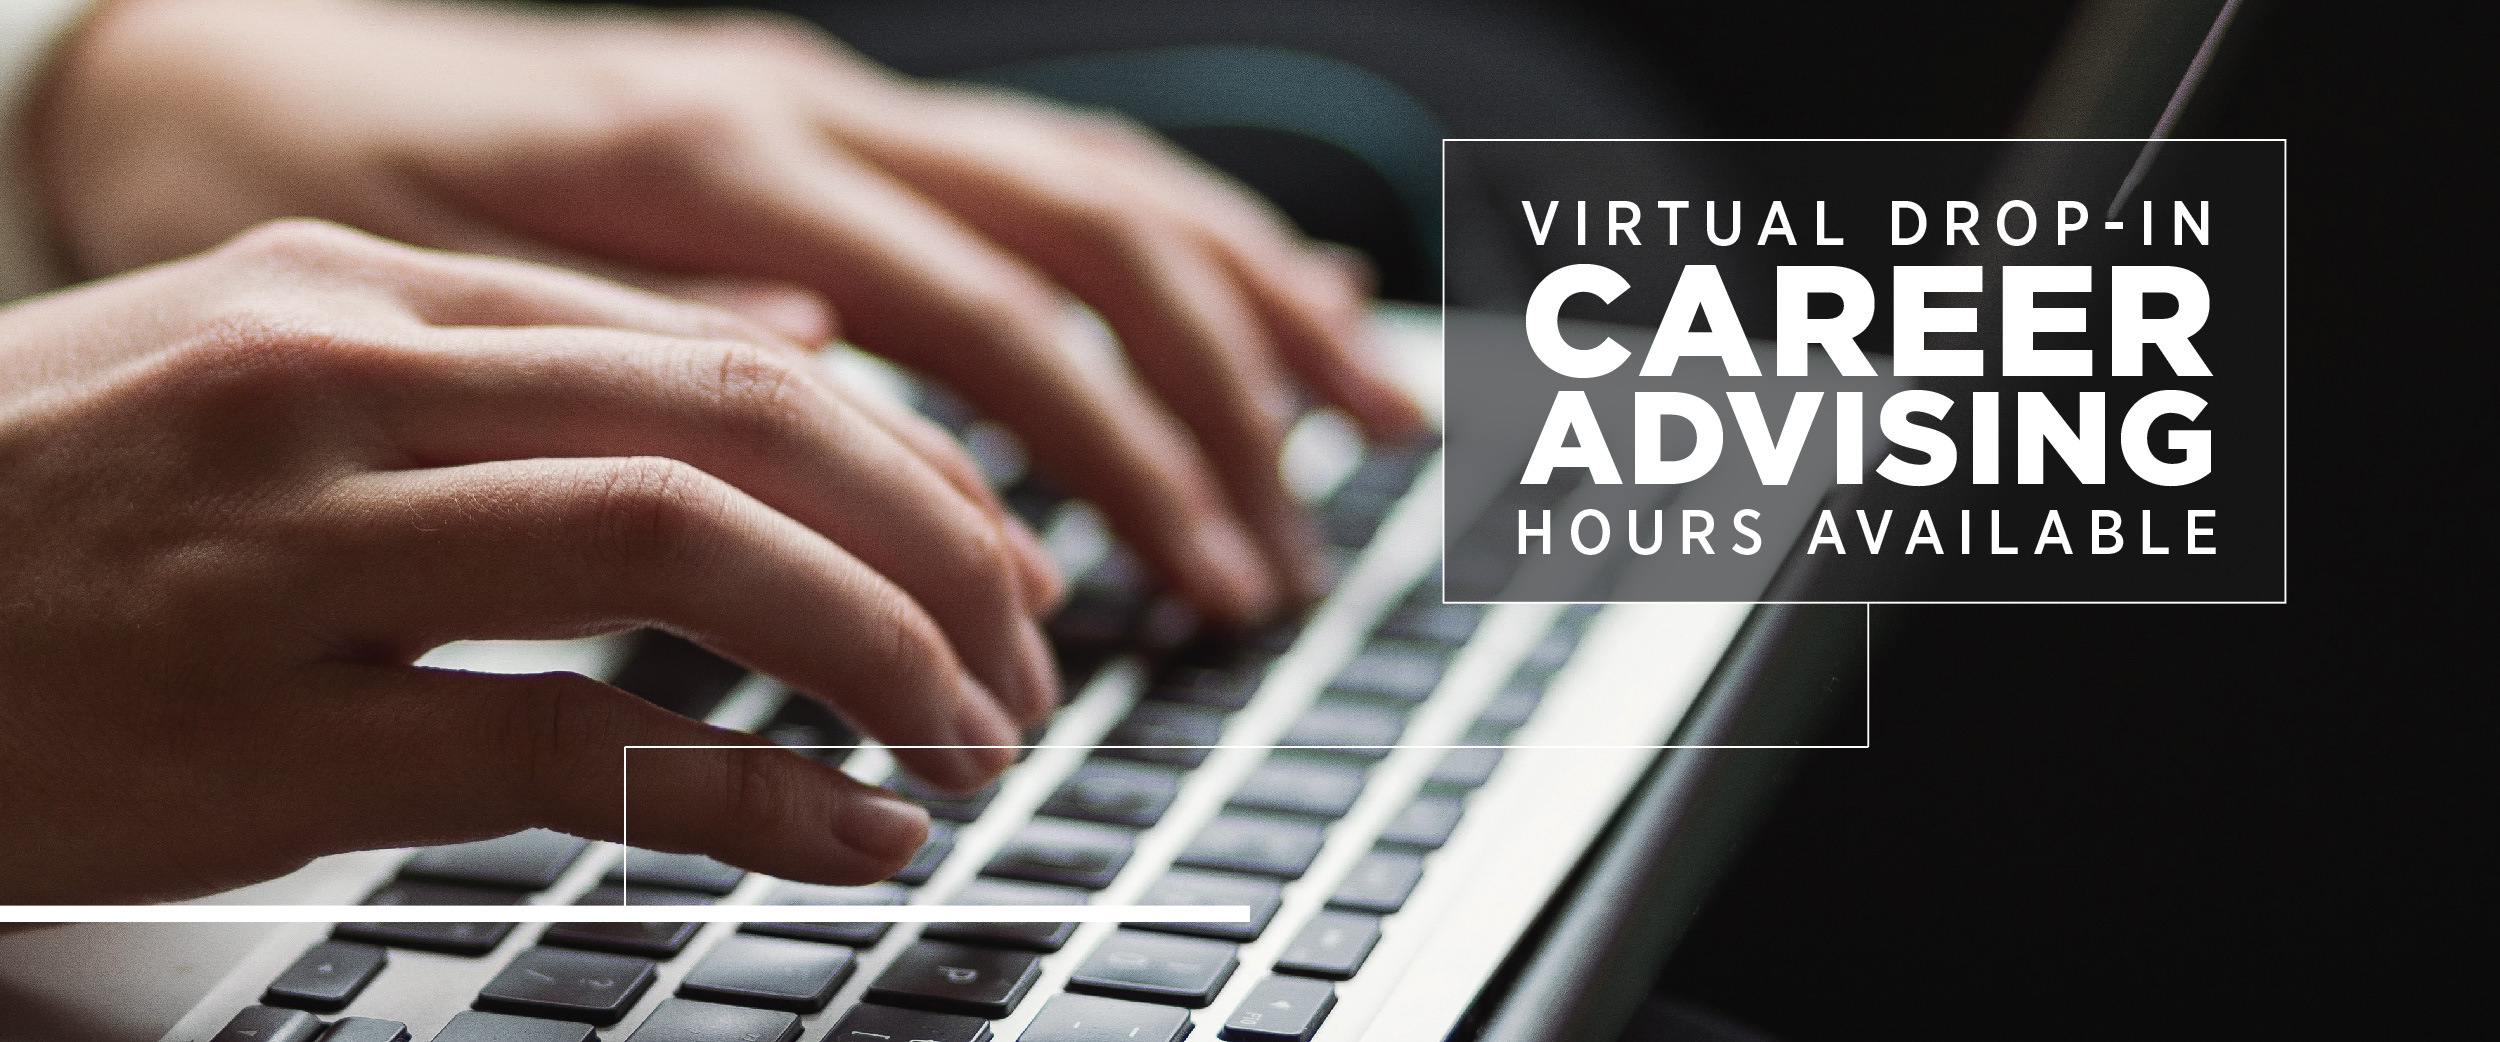 Virtual Drop-In Career Advising Hours are available